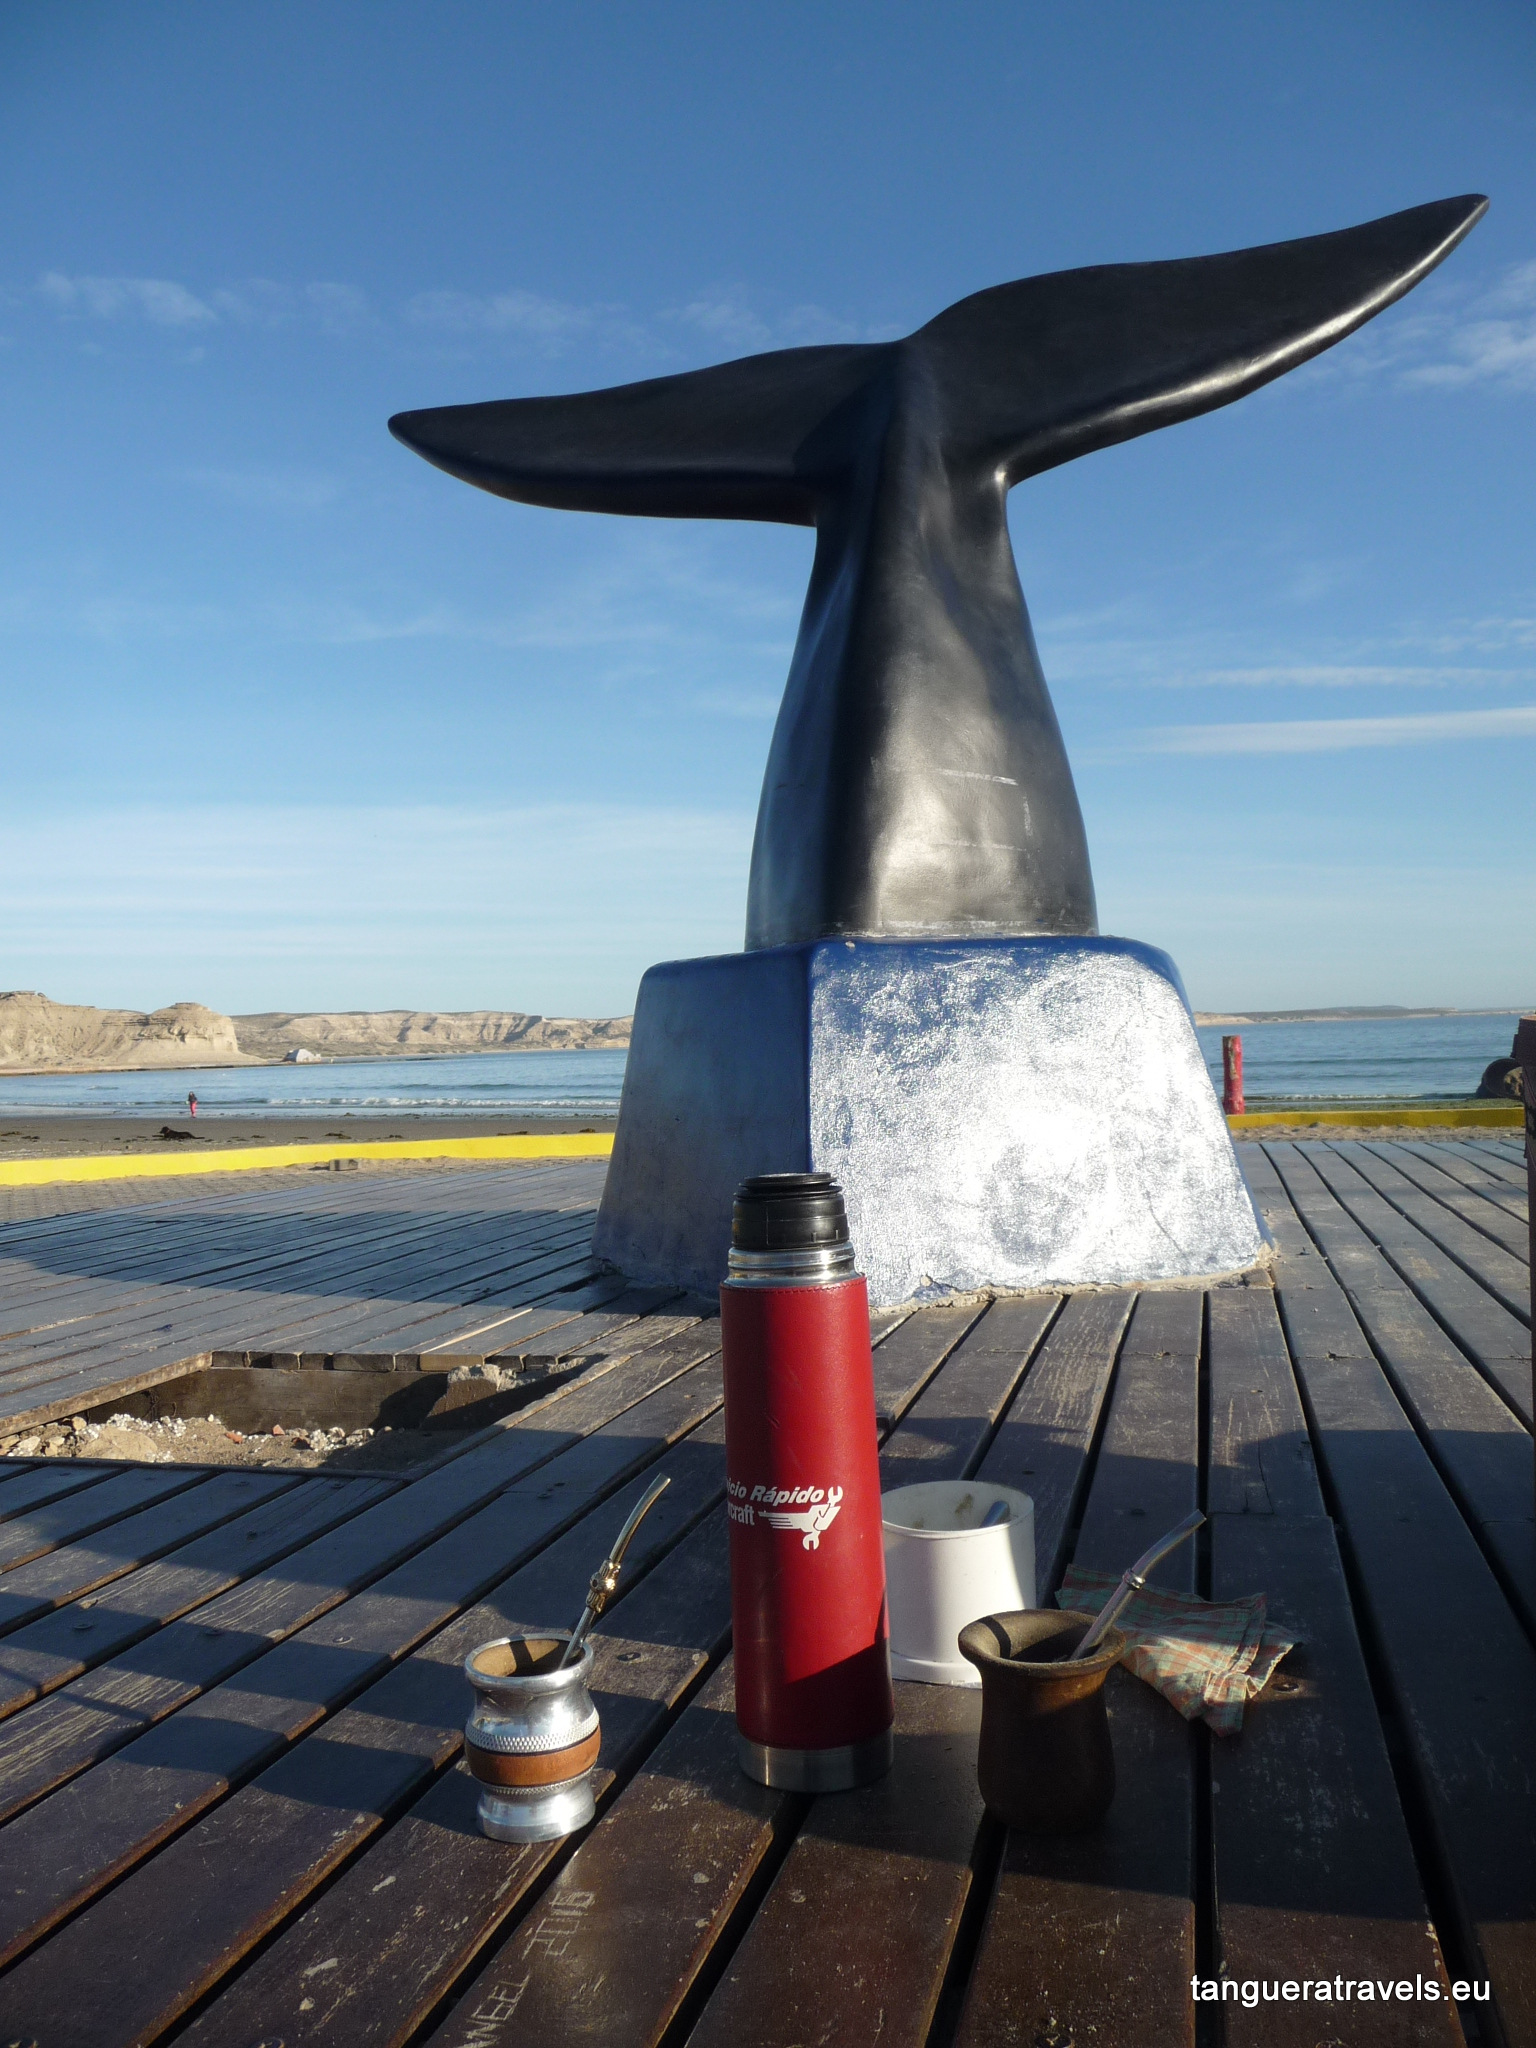 Mate break at Puerto Piramides